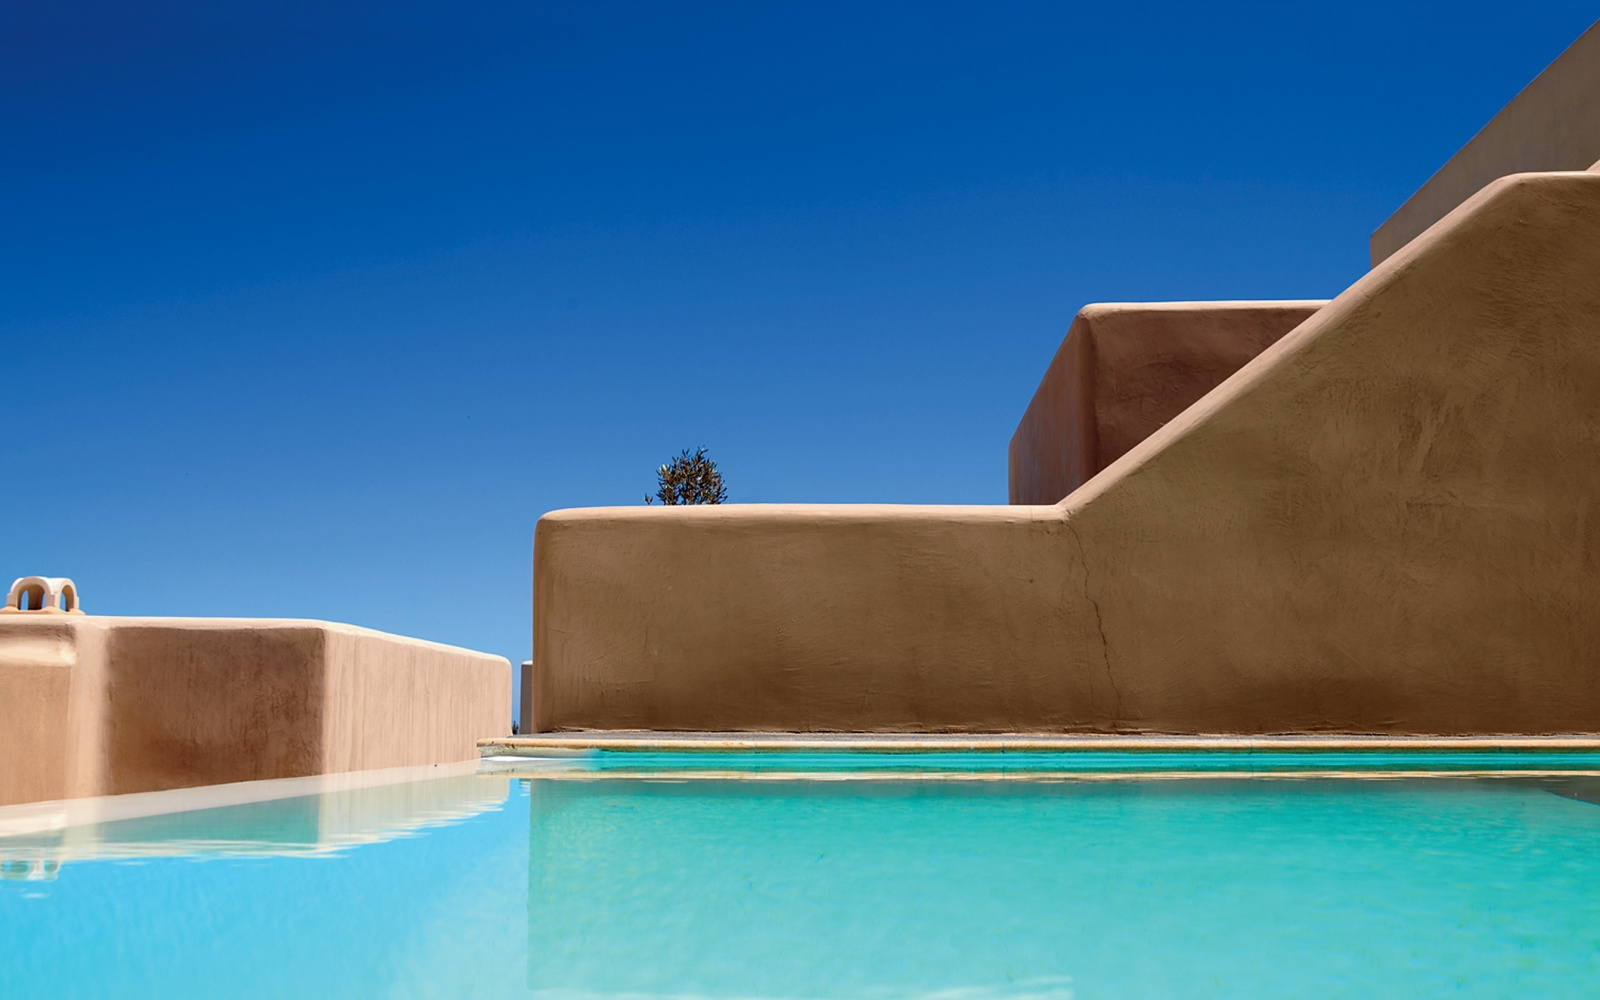 Voreina Gallery Suites pool